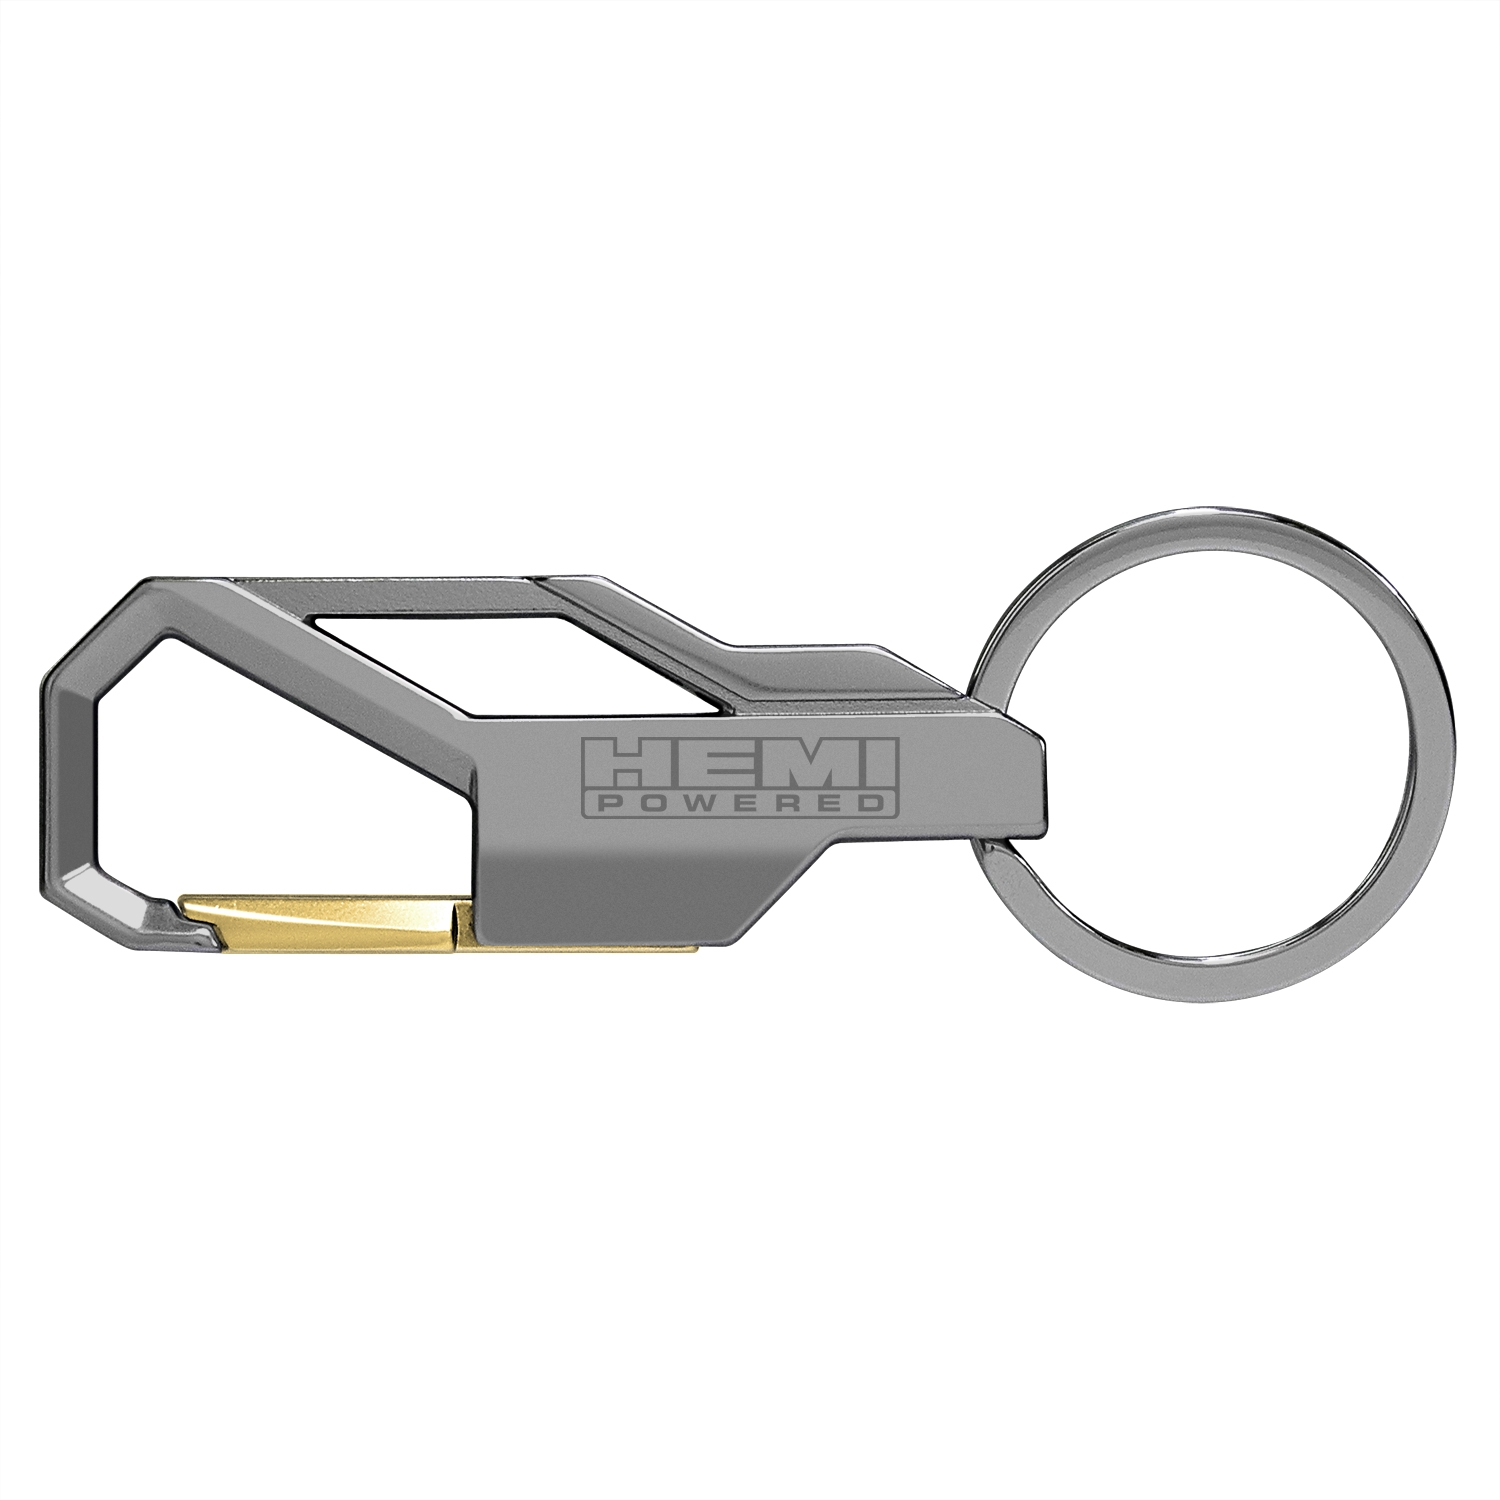 HEMI Powered Gunmetal Gray Snap Hook Metal Key Chain